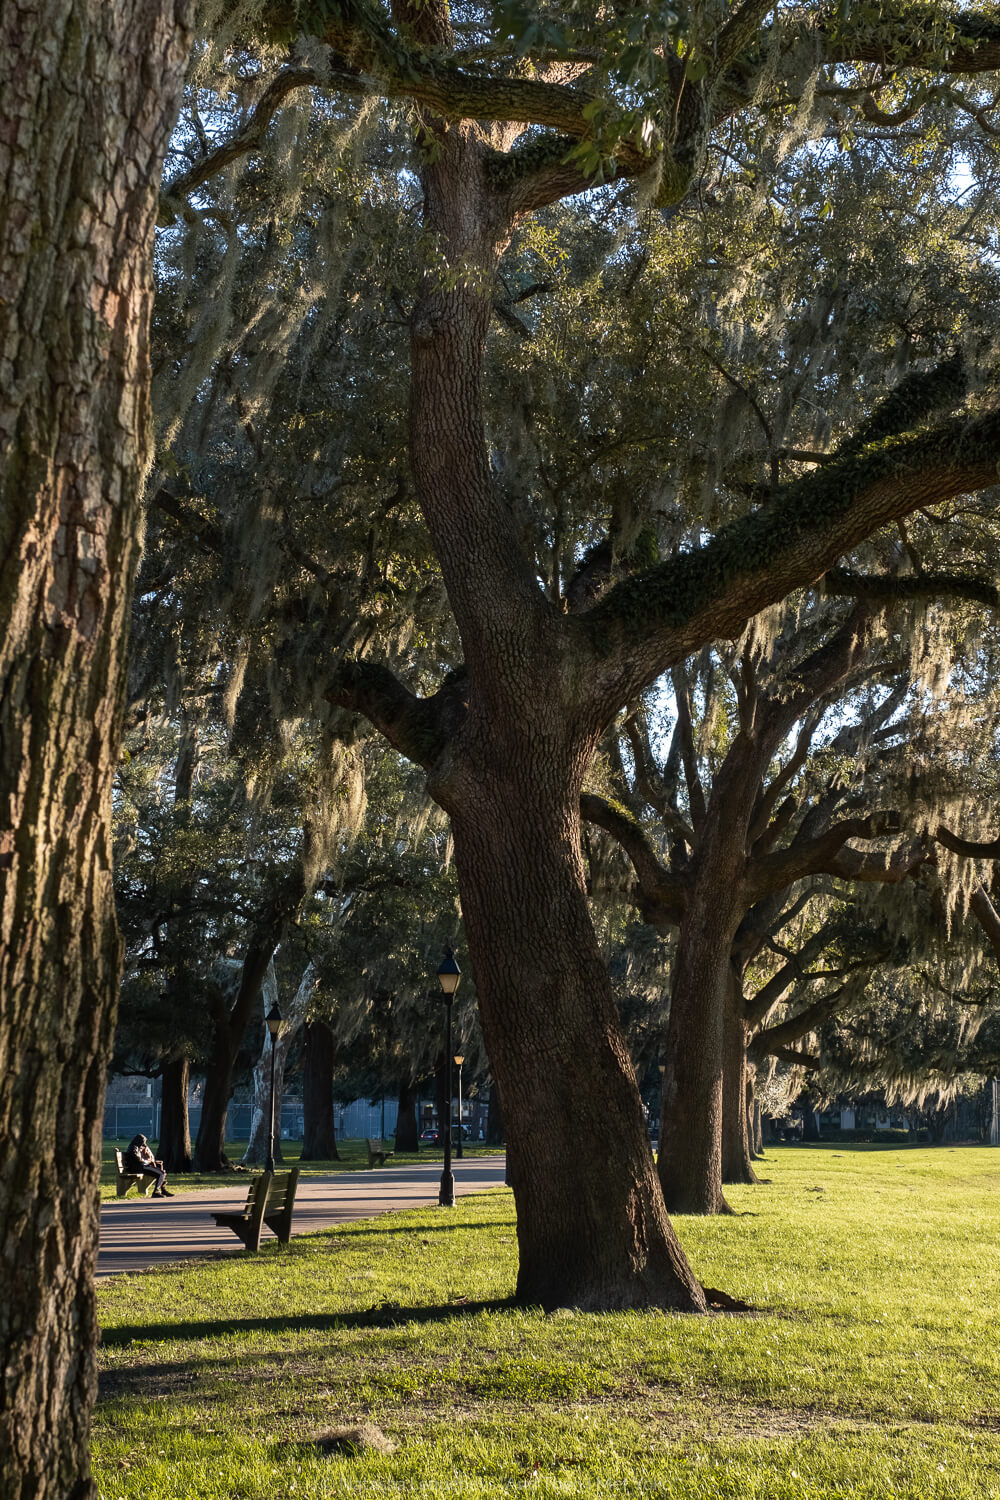 """Sunset in Forsyth Park, Savannah, Georgia. Travel photography and guide by © Natasha Lequepeys for """"And Then I Met Yoko"""". #savannah #usa #travelguide #travelblog"""